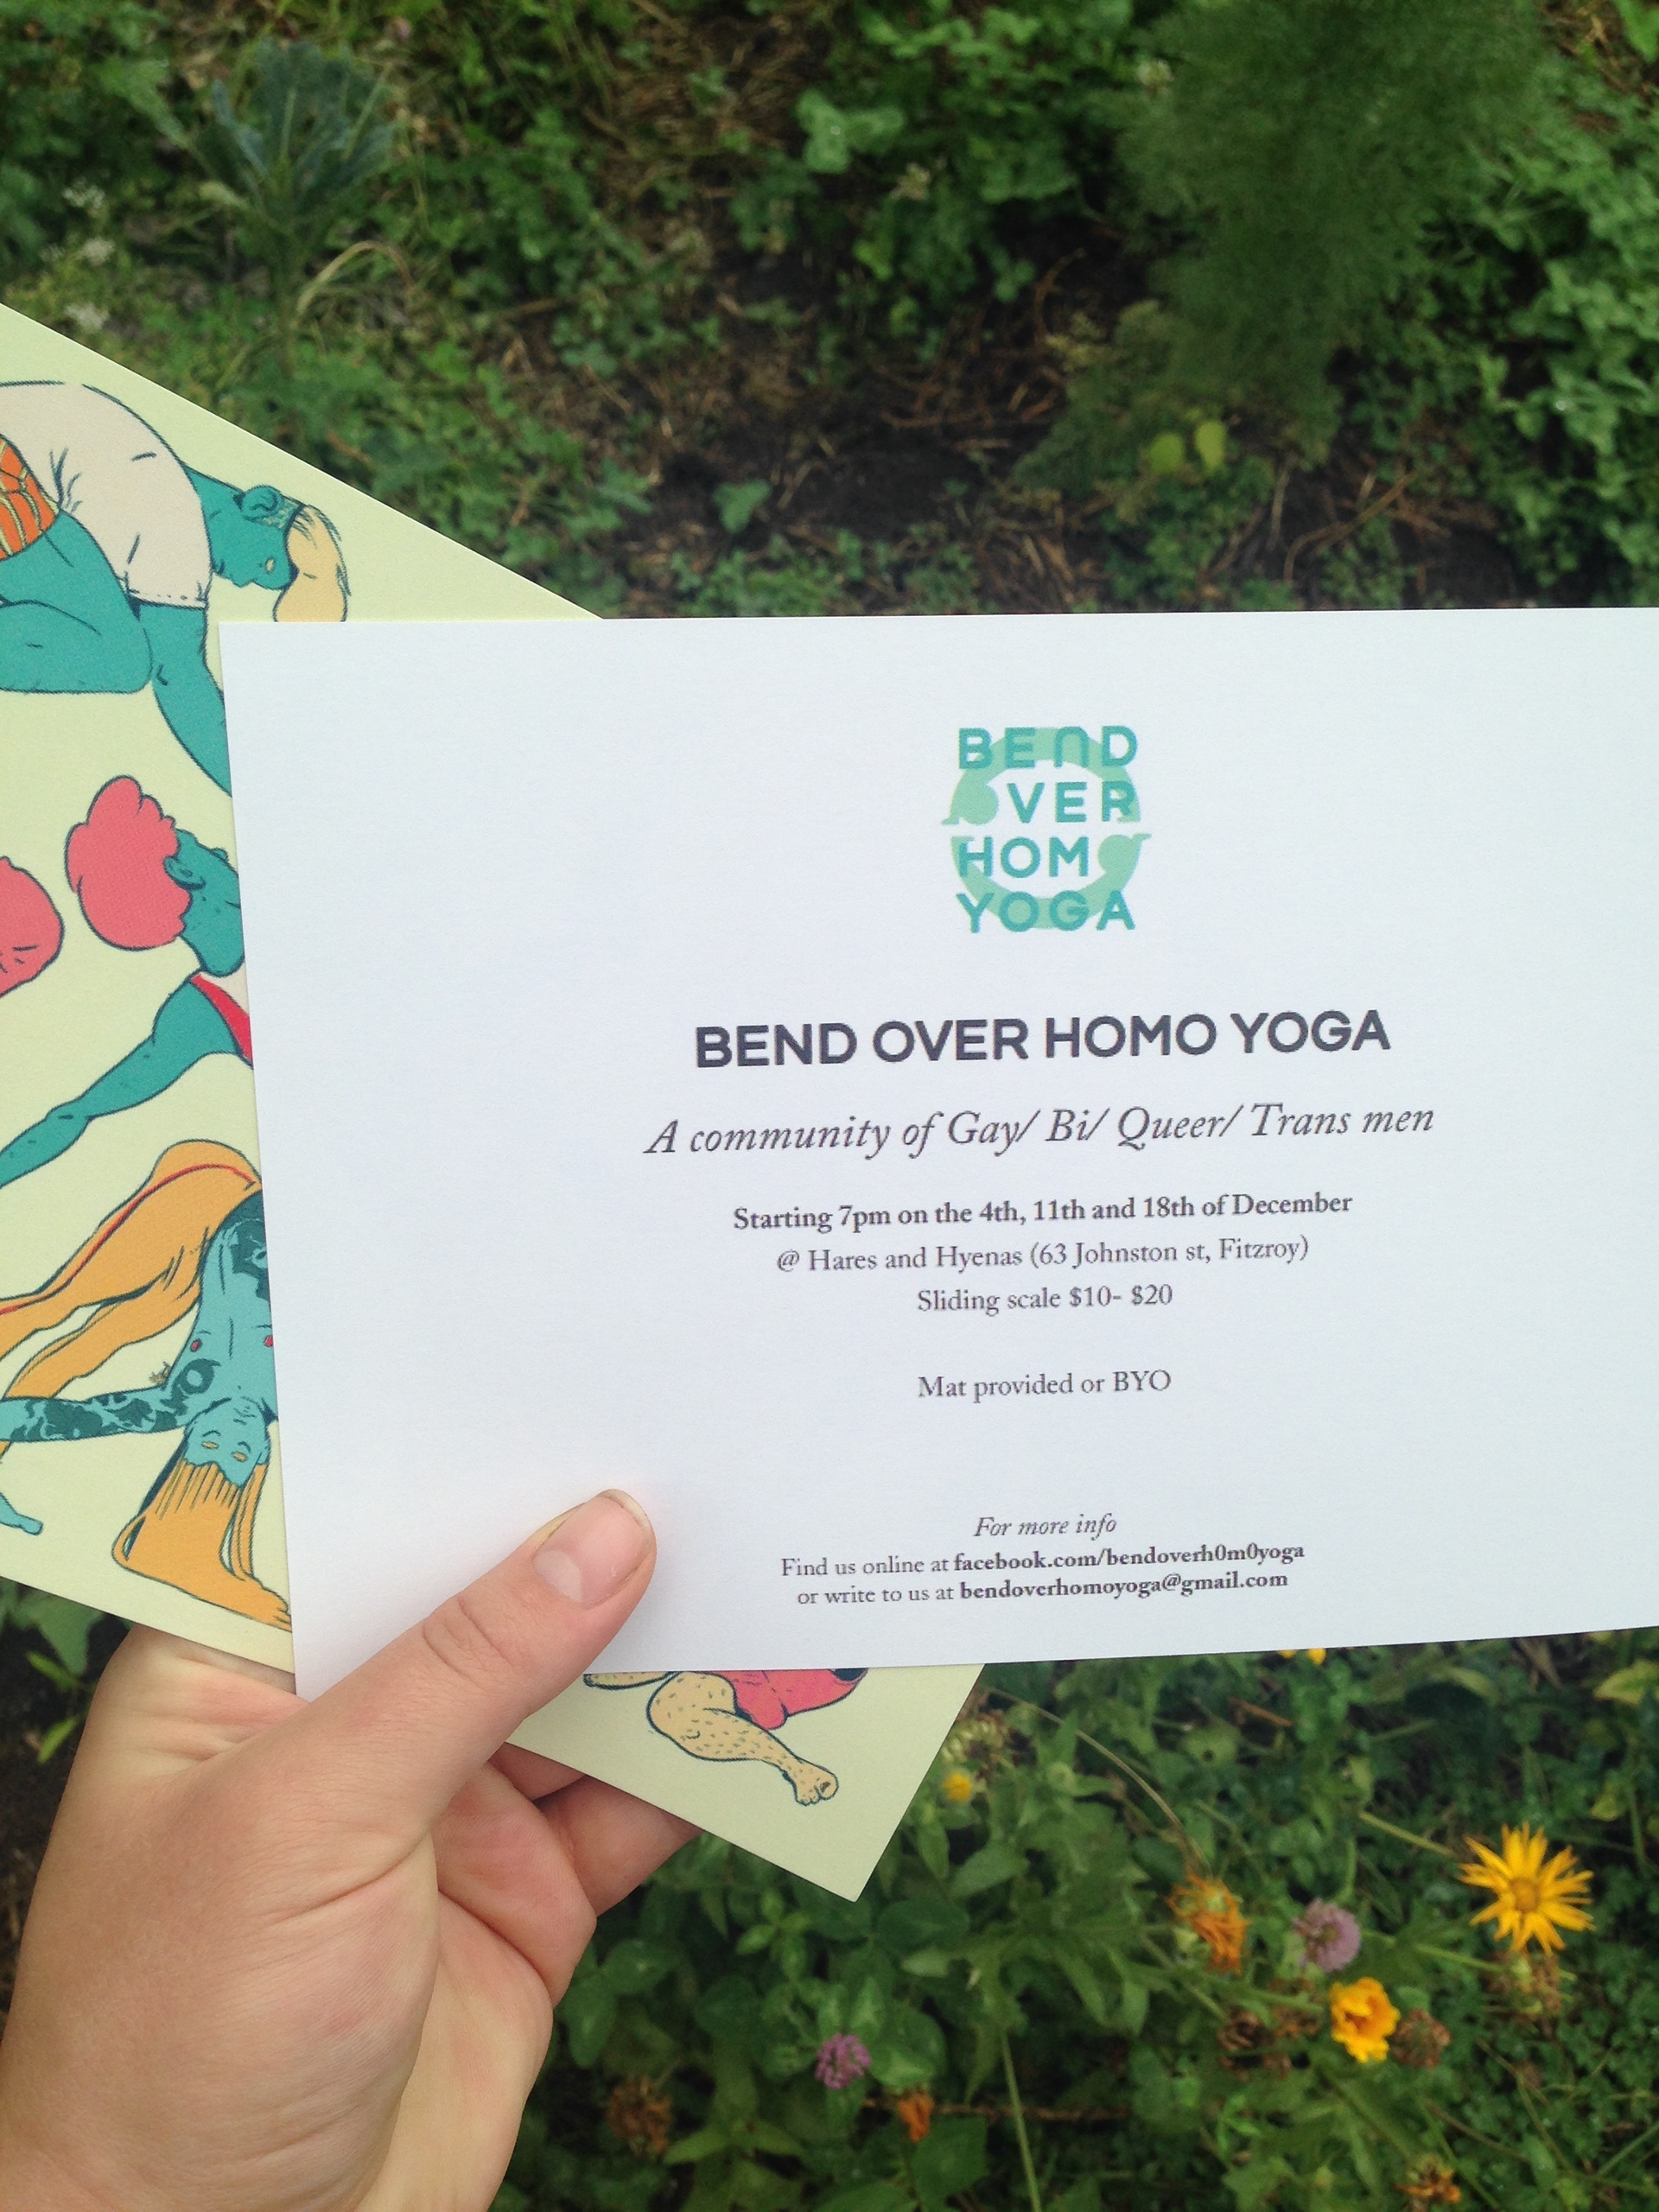 Bend Over Homo Yoga: Yoga for Men on Behance